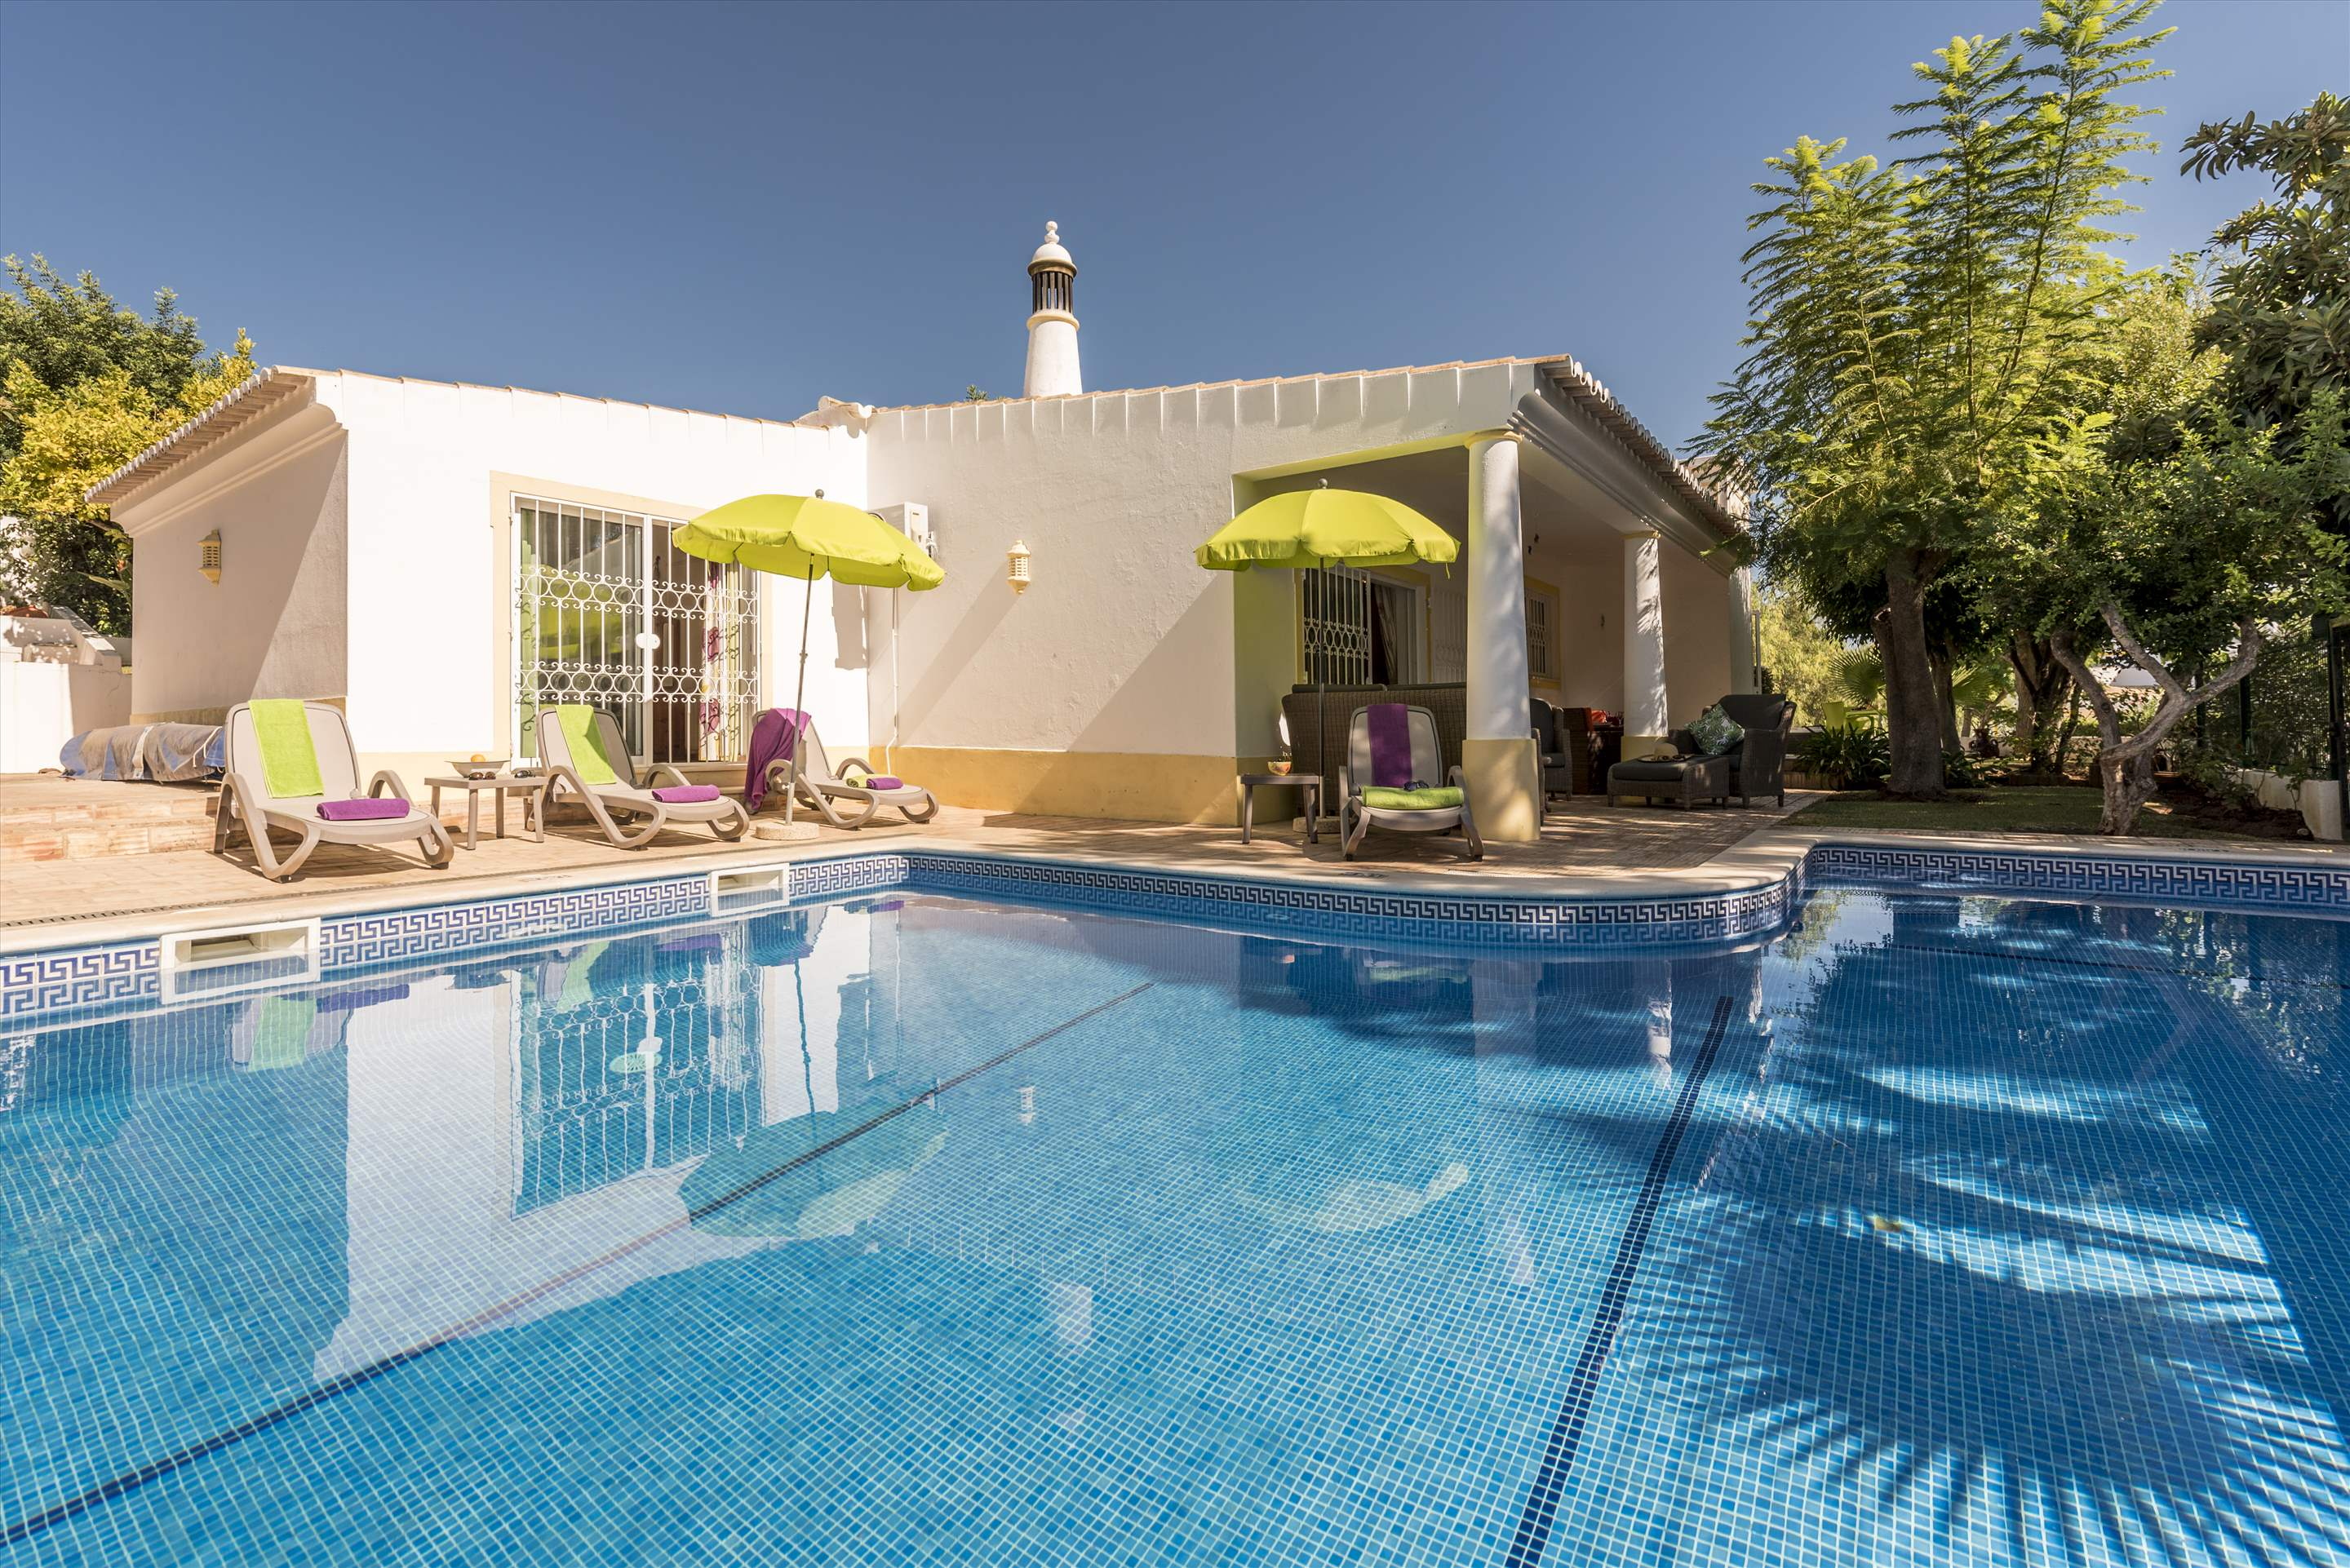 Casa Guia, Two Bedroom Rate, 2 bedroom villa in Gale, Vale da Parra and Guia, Algarve